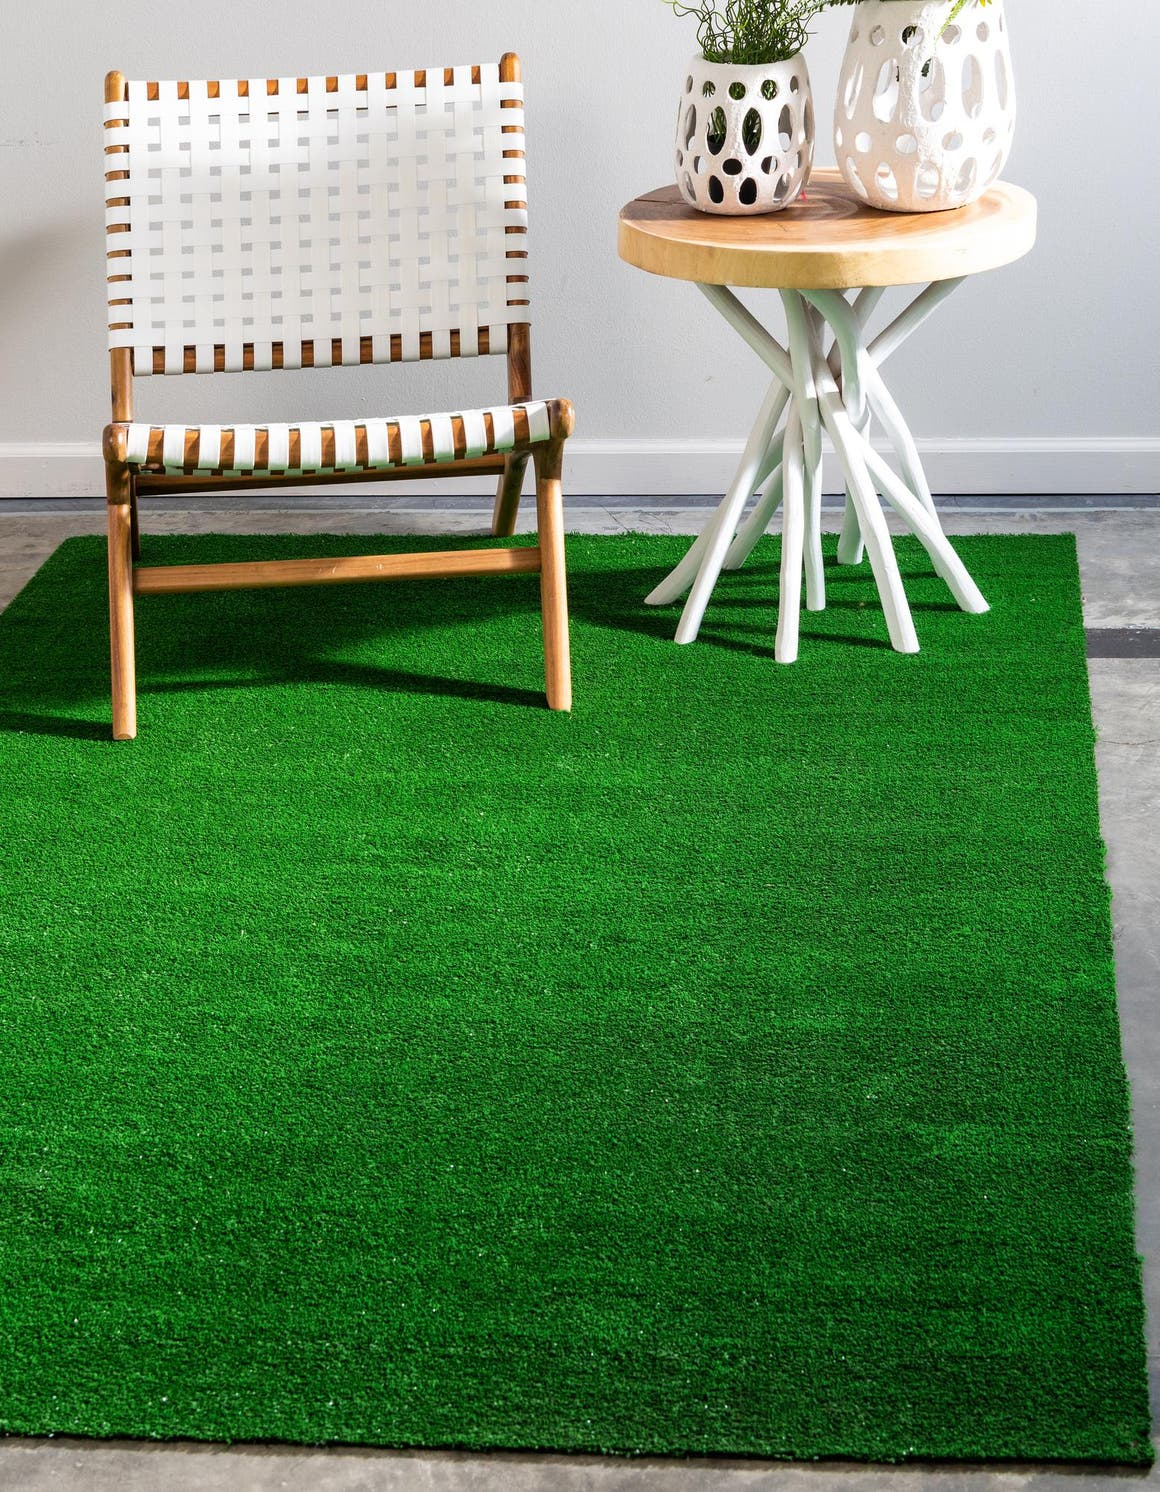 Green  5' x 8' Outdoor Grass